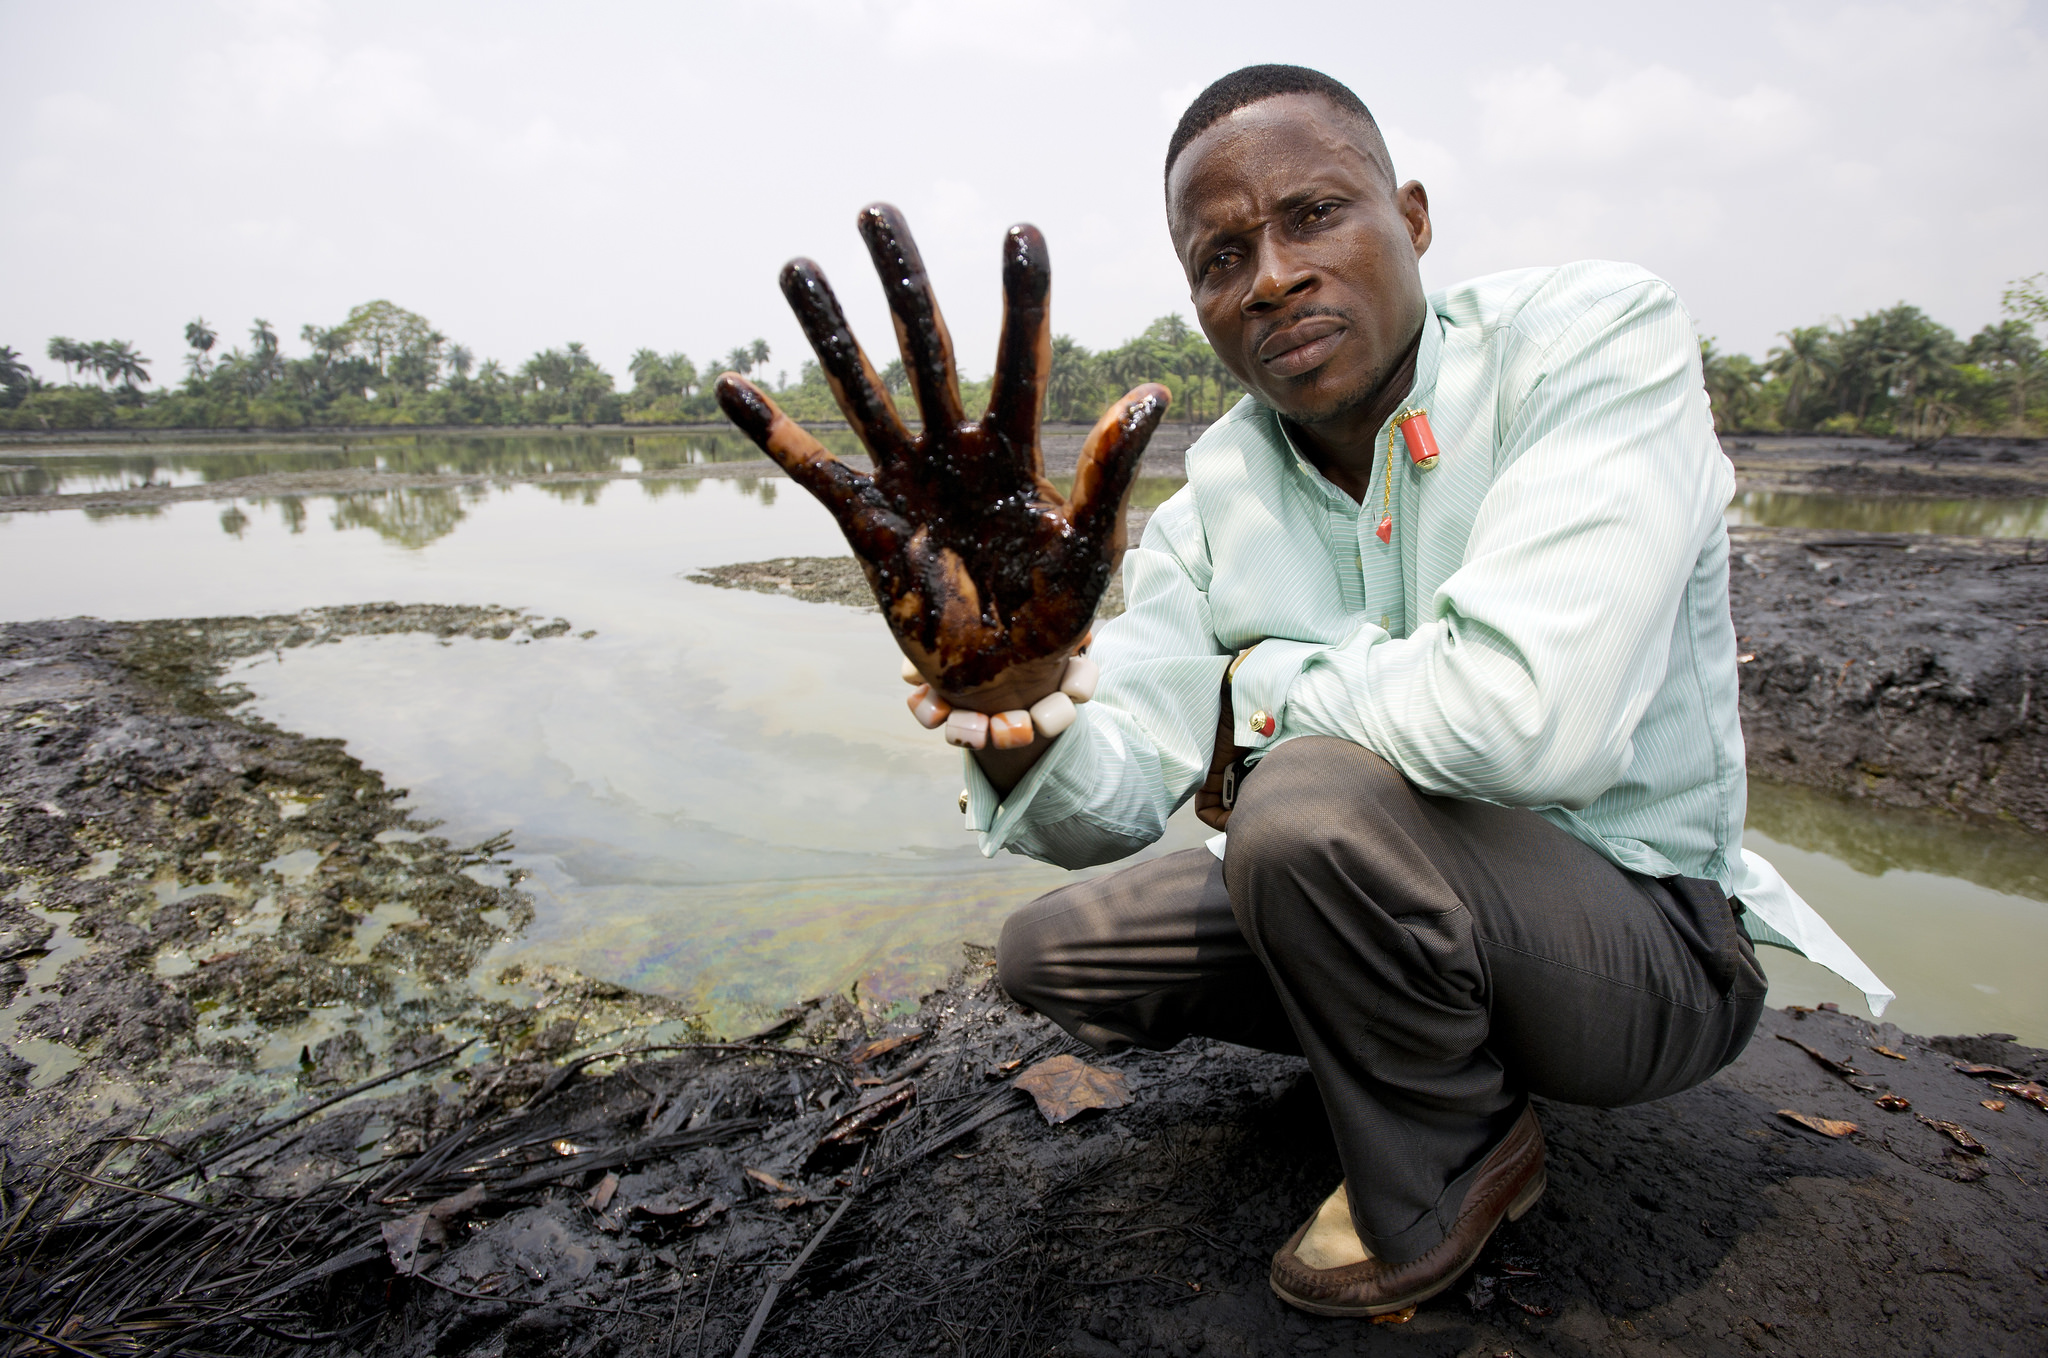 Plaintiff Eric Dooh shows the crude oil, allegedly from Shell pipeline leaks, that has affected the banks of the creek through his village of Goi. By Milieudefensie.